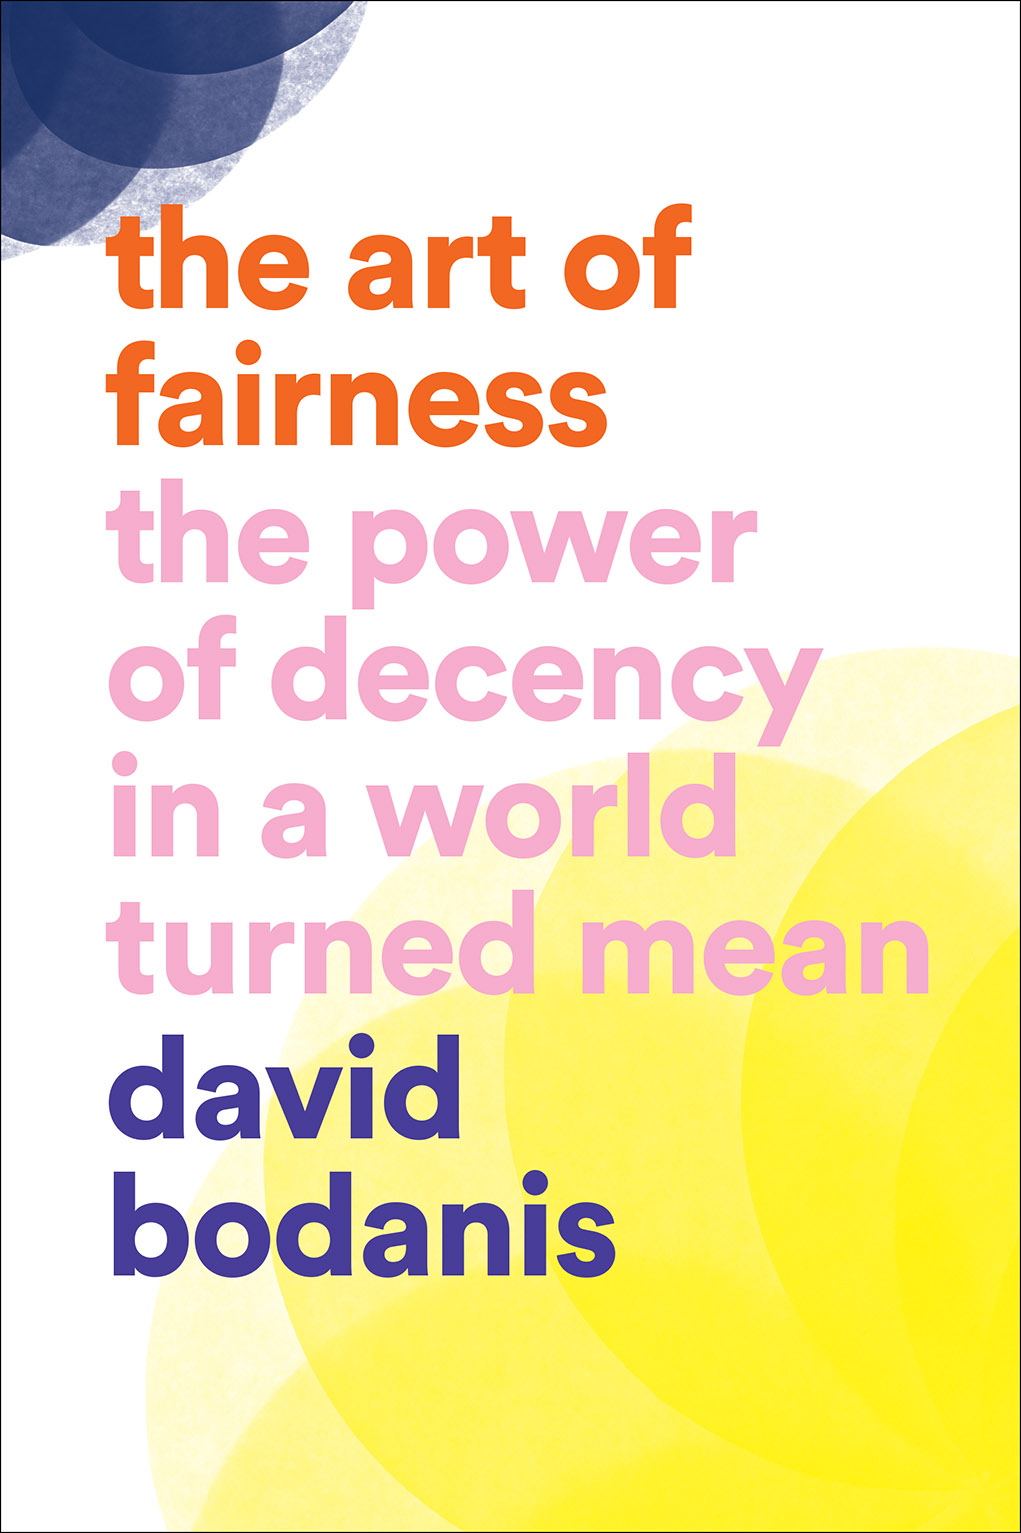 Art of Fairness: The Power of Decency in a World Turned Mean